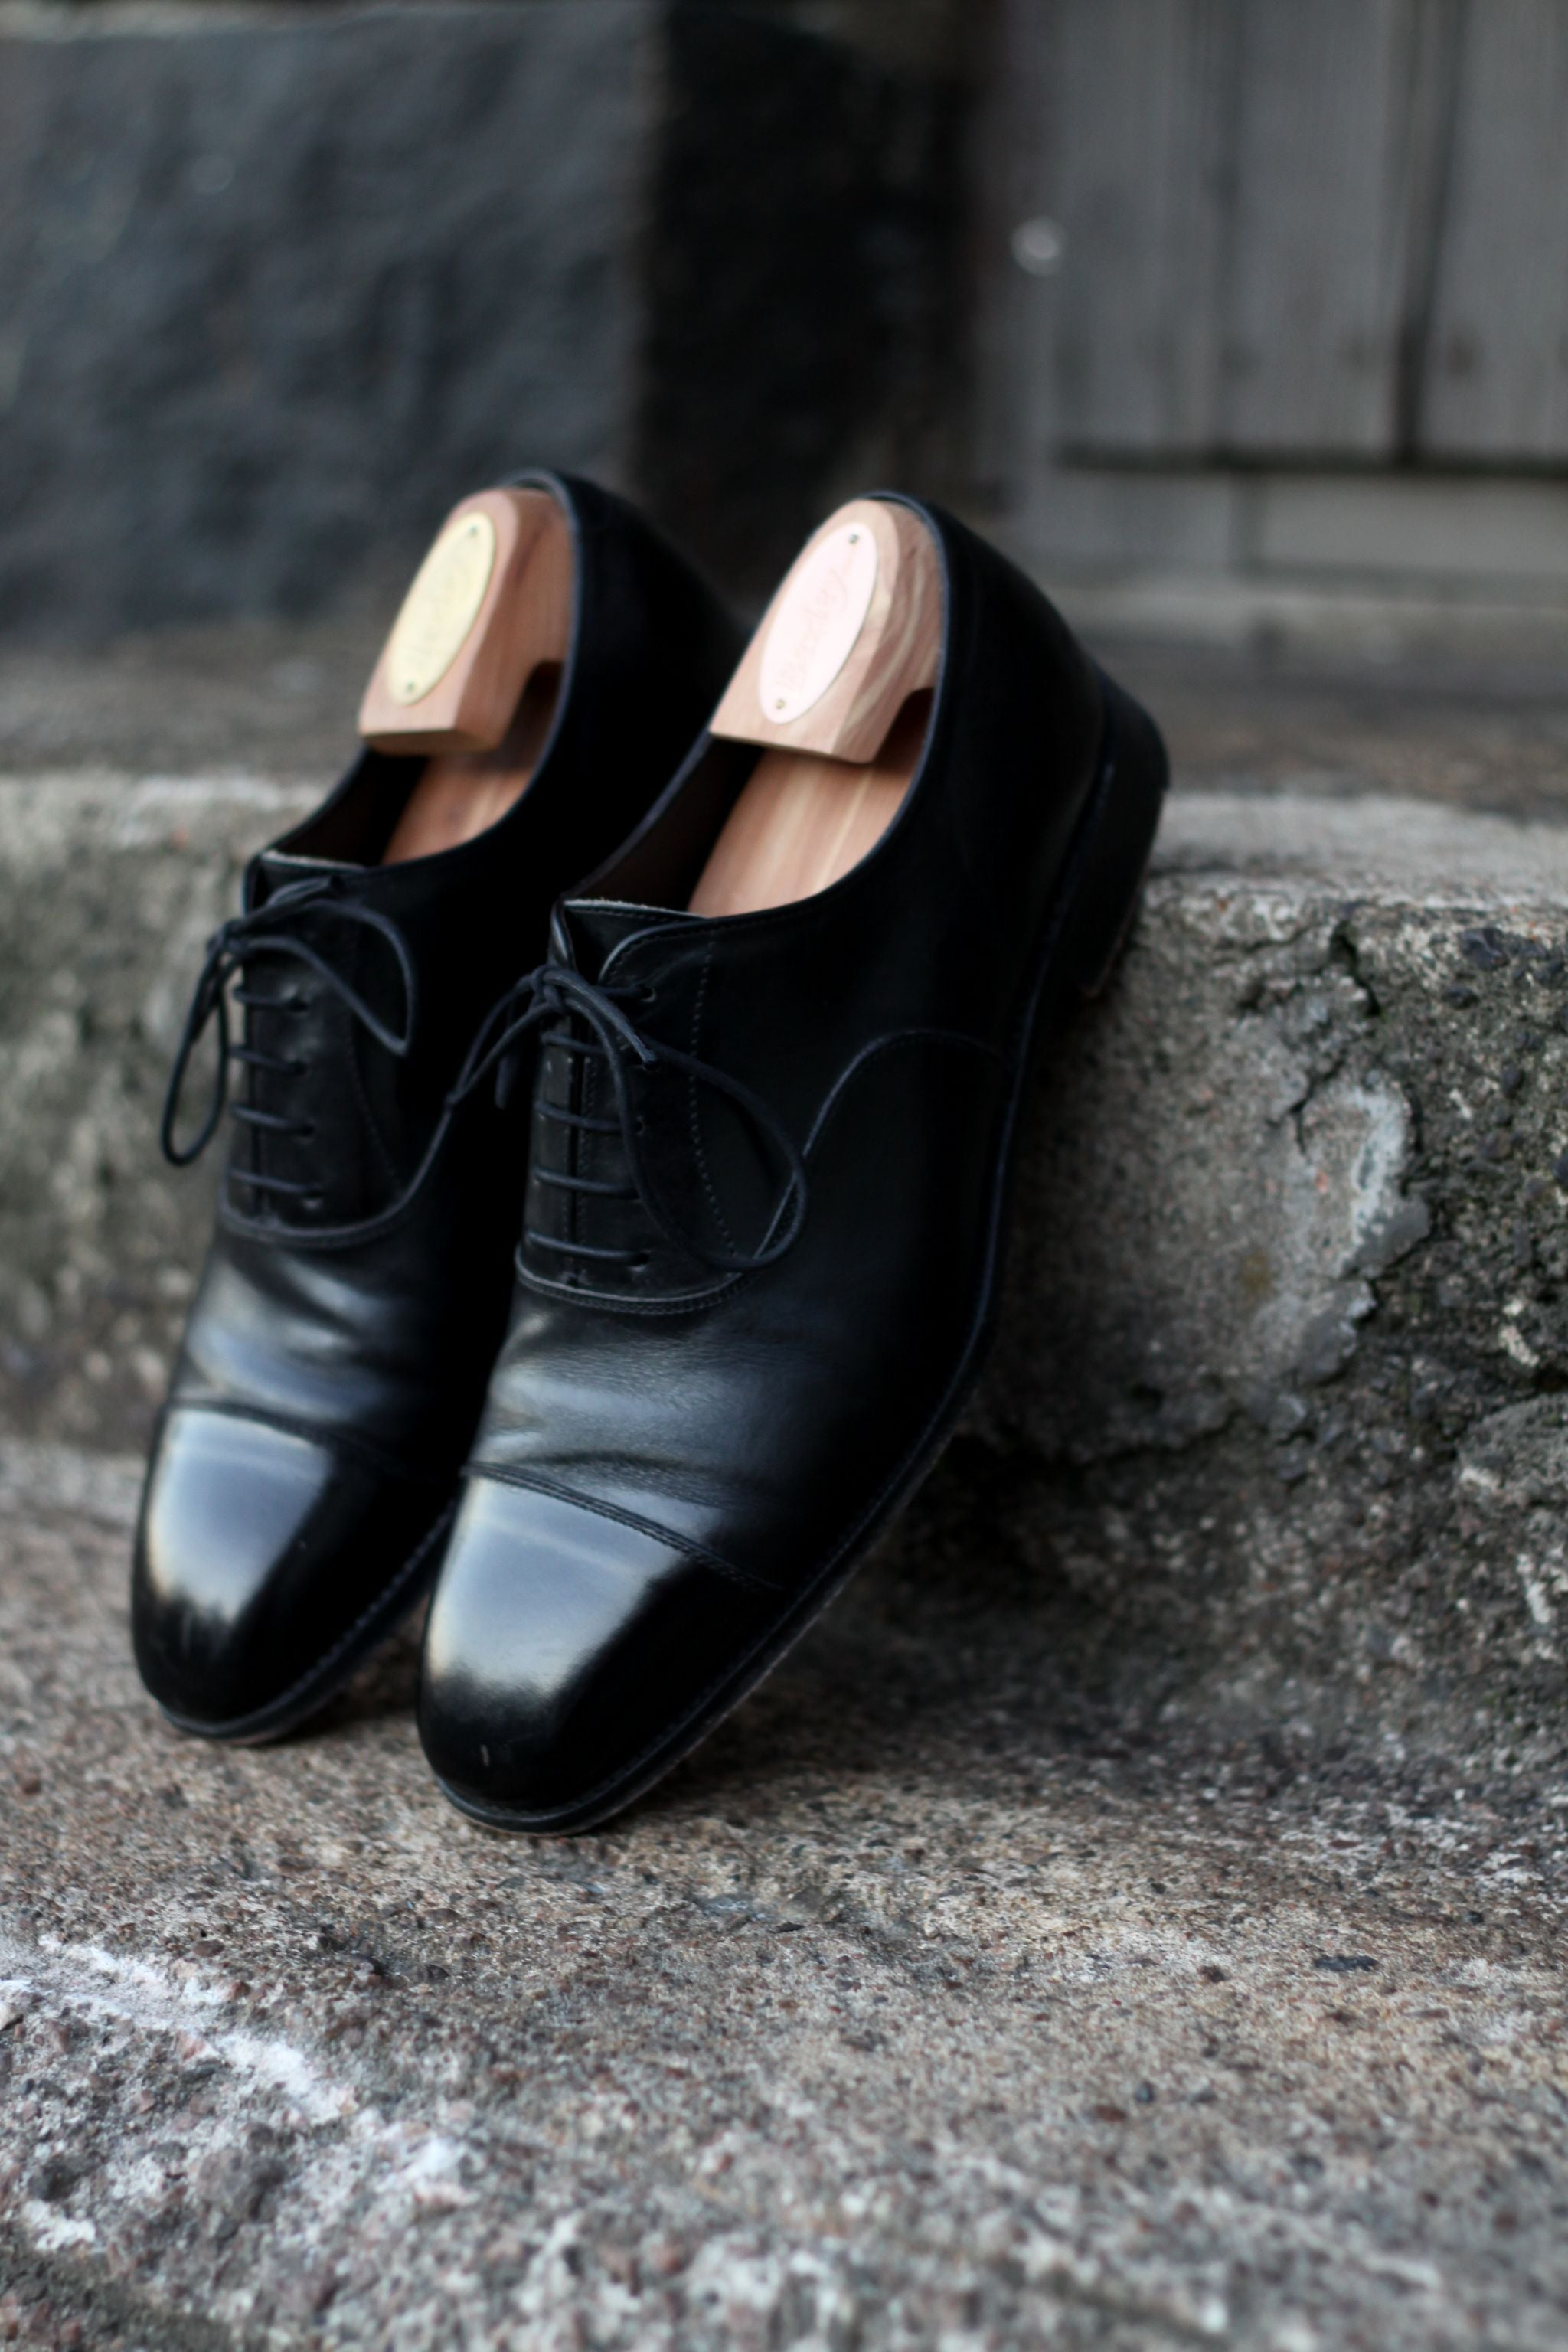 Black oxford shoes by Alfred Sargent